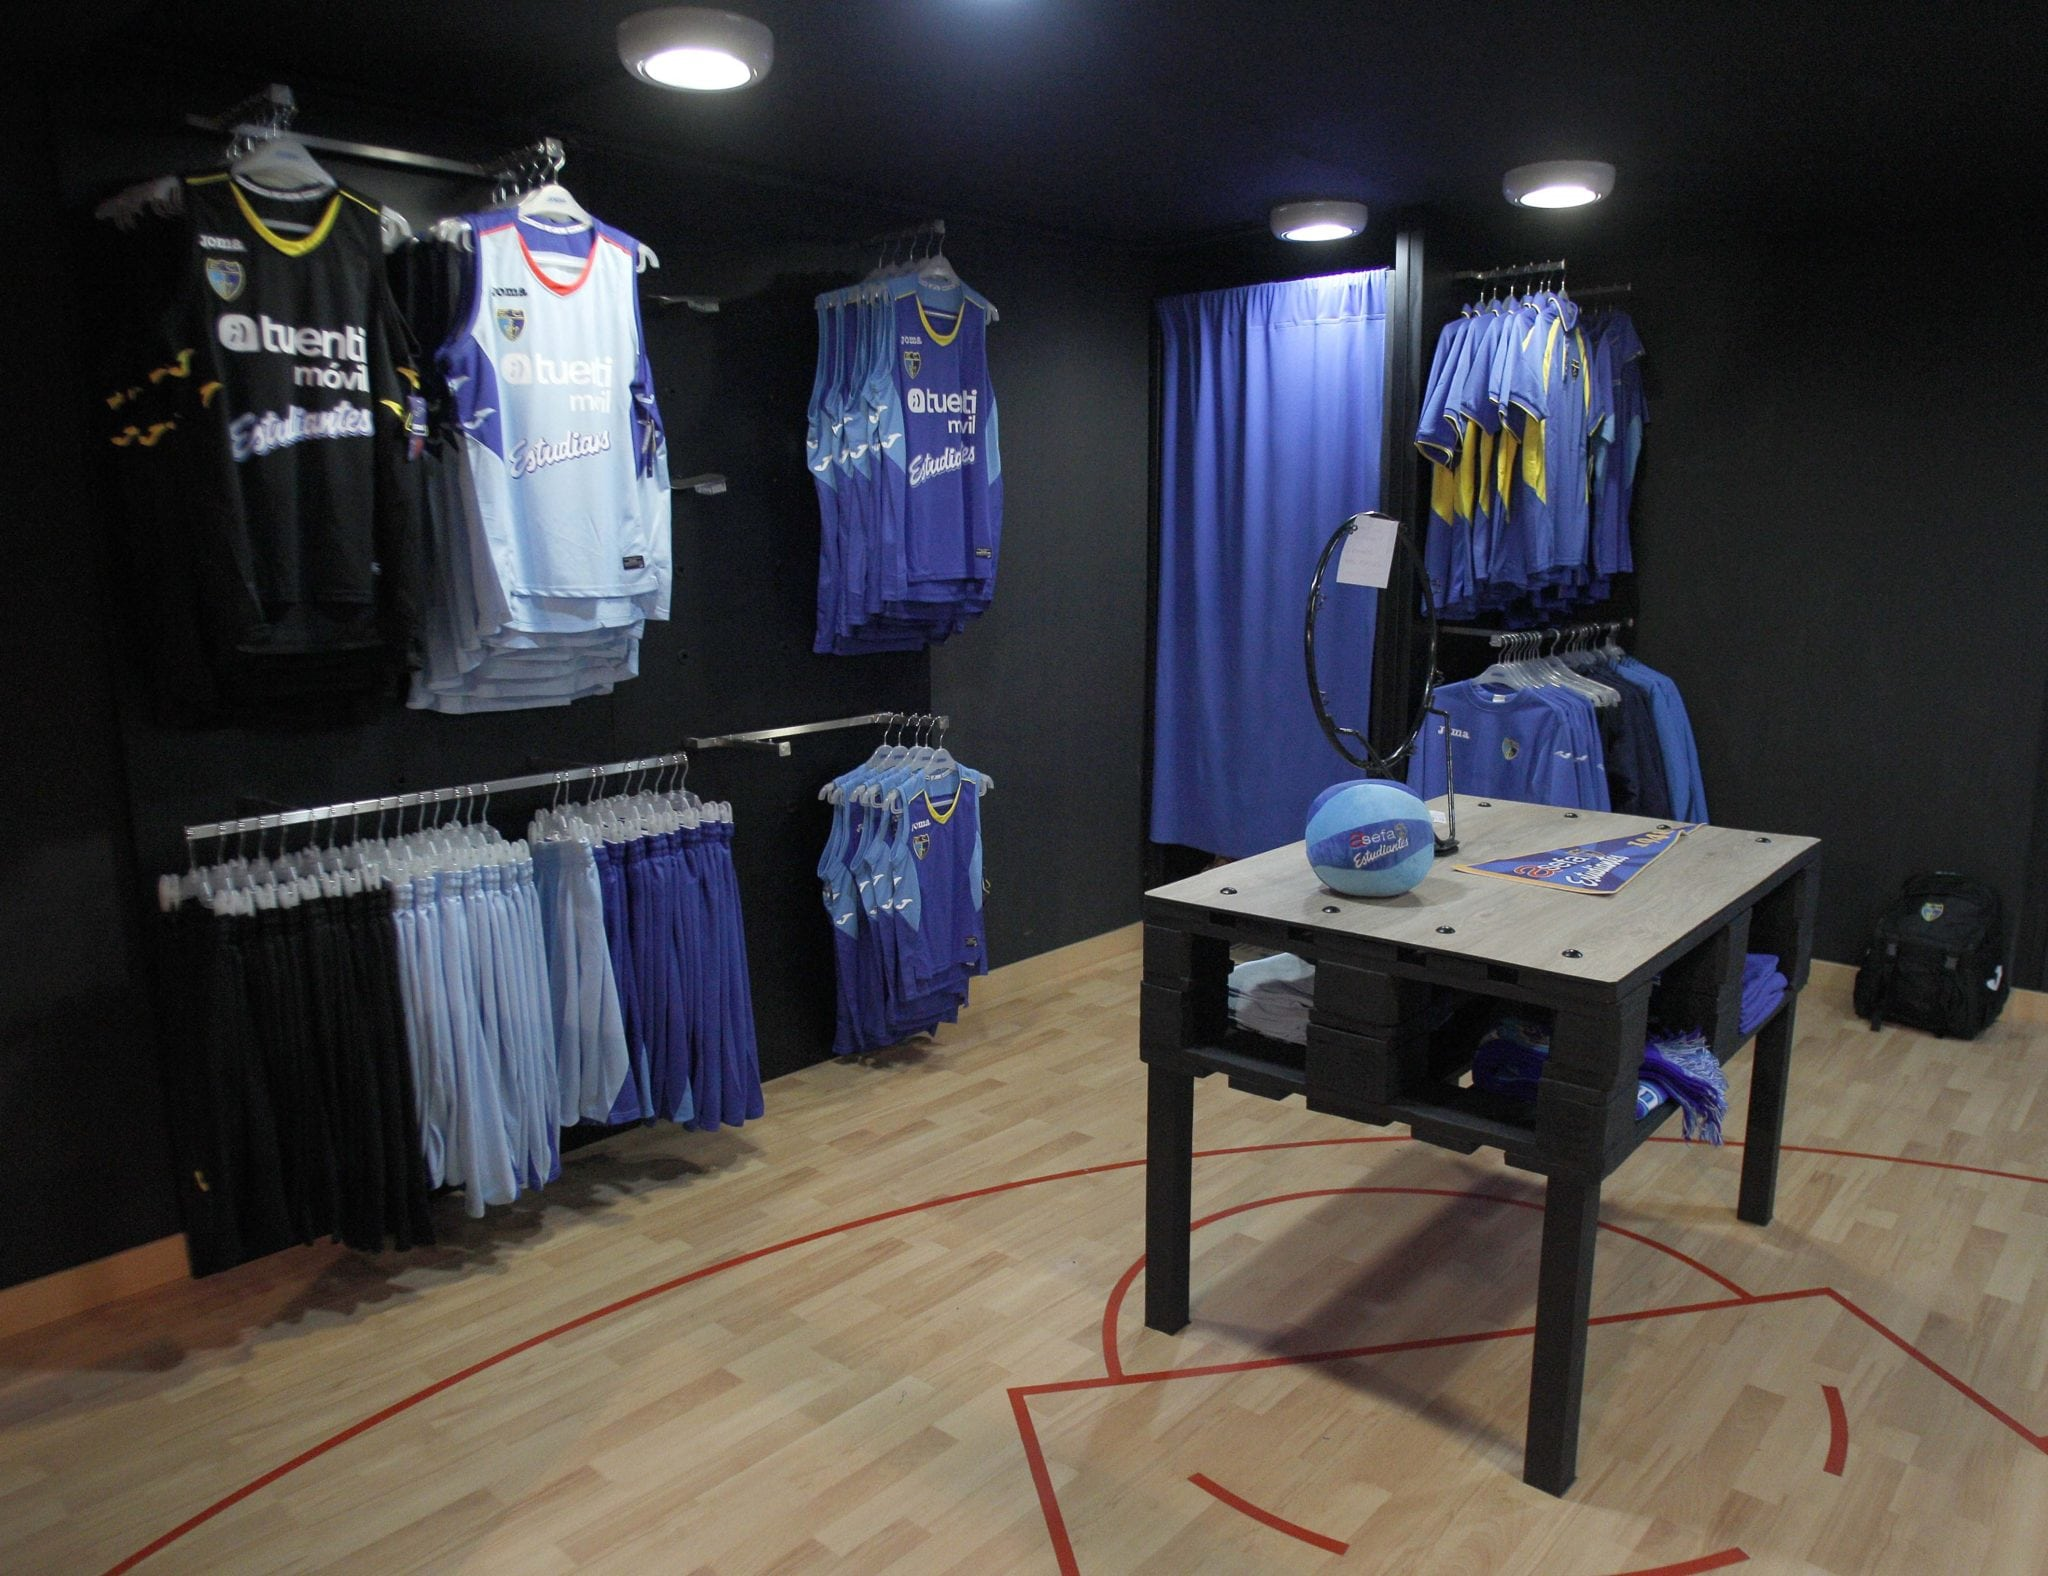 6021d1f07ee Tienda oficial Movistar Estudiantes - Basket Revolution - Movistar ...